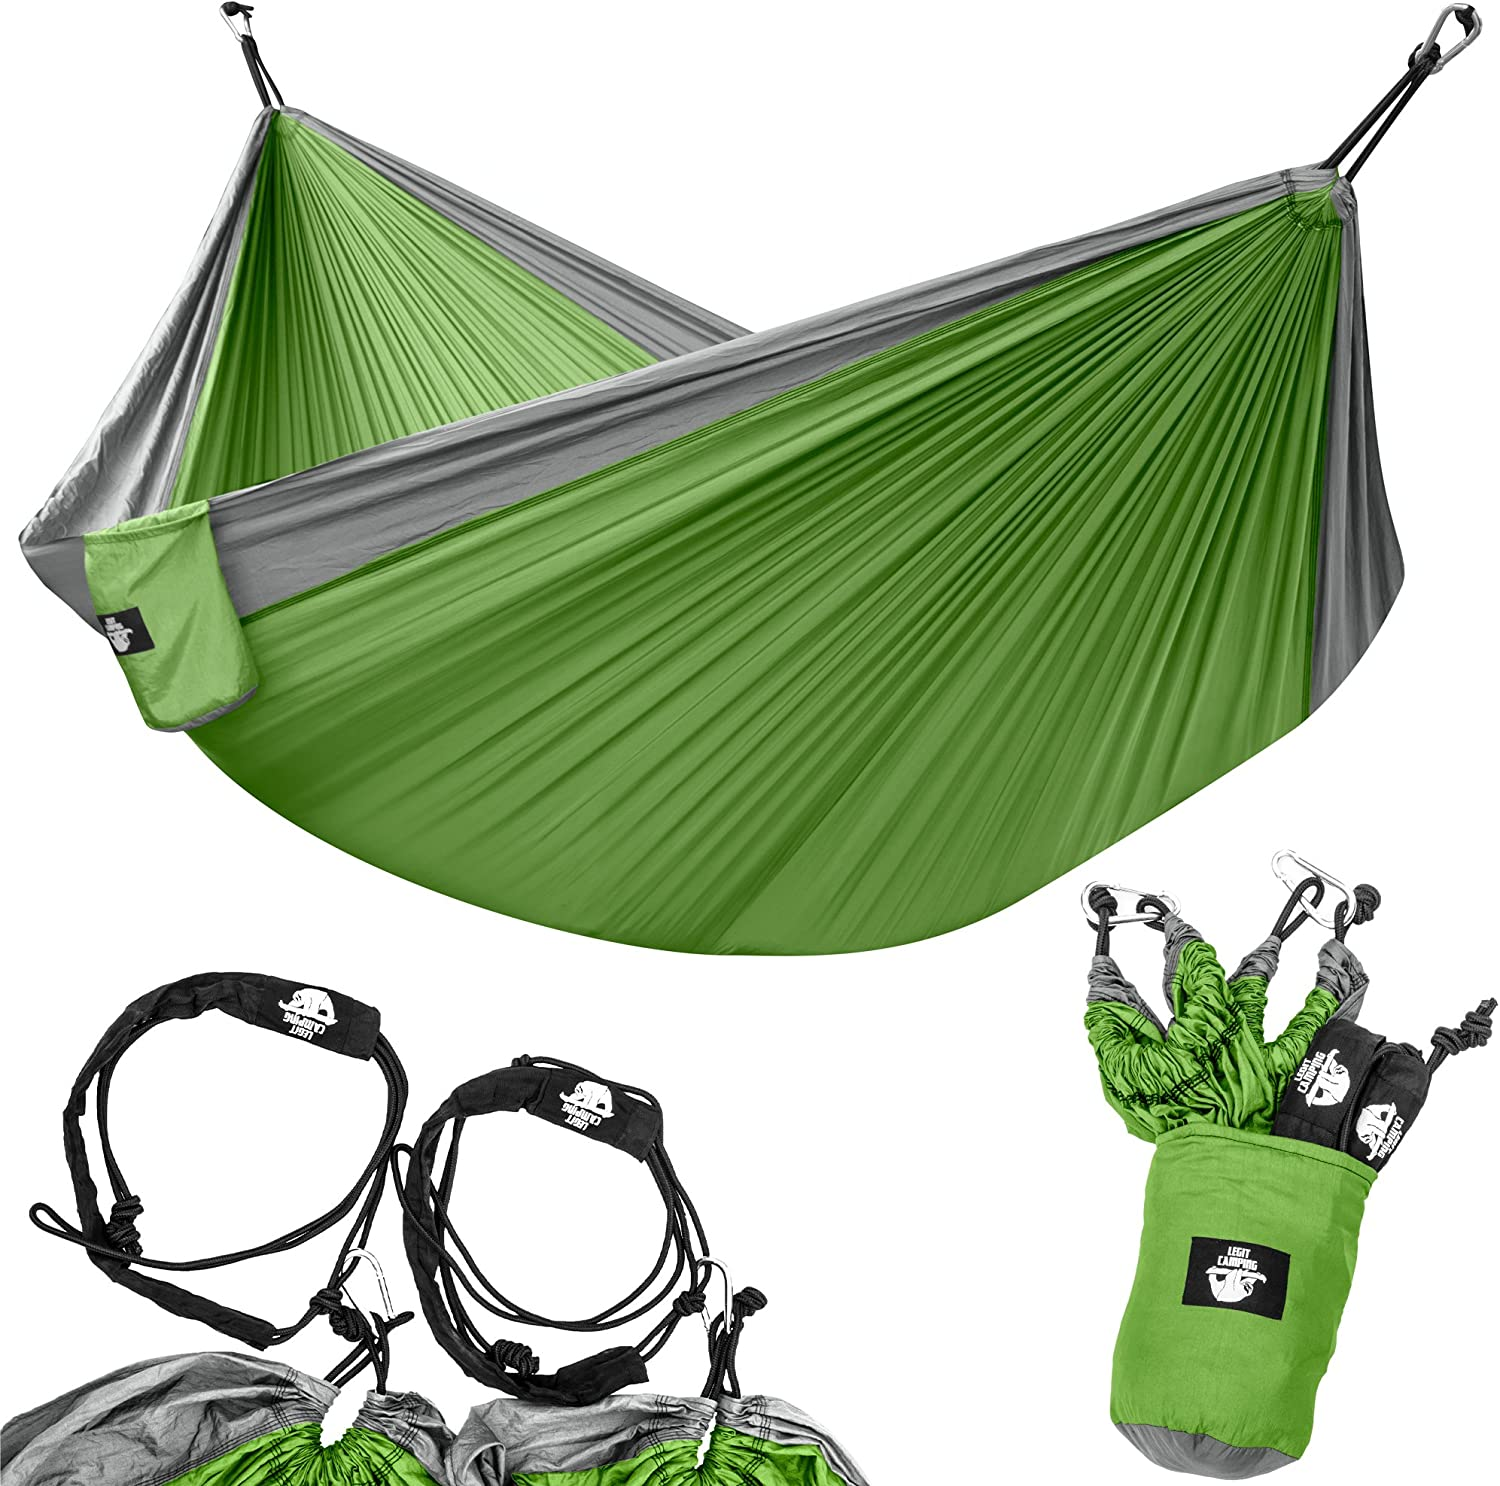 Legit Camping Portable Double Hammock - Grey/Lime Green - 400 lb Weight Capacity